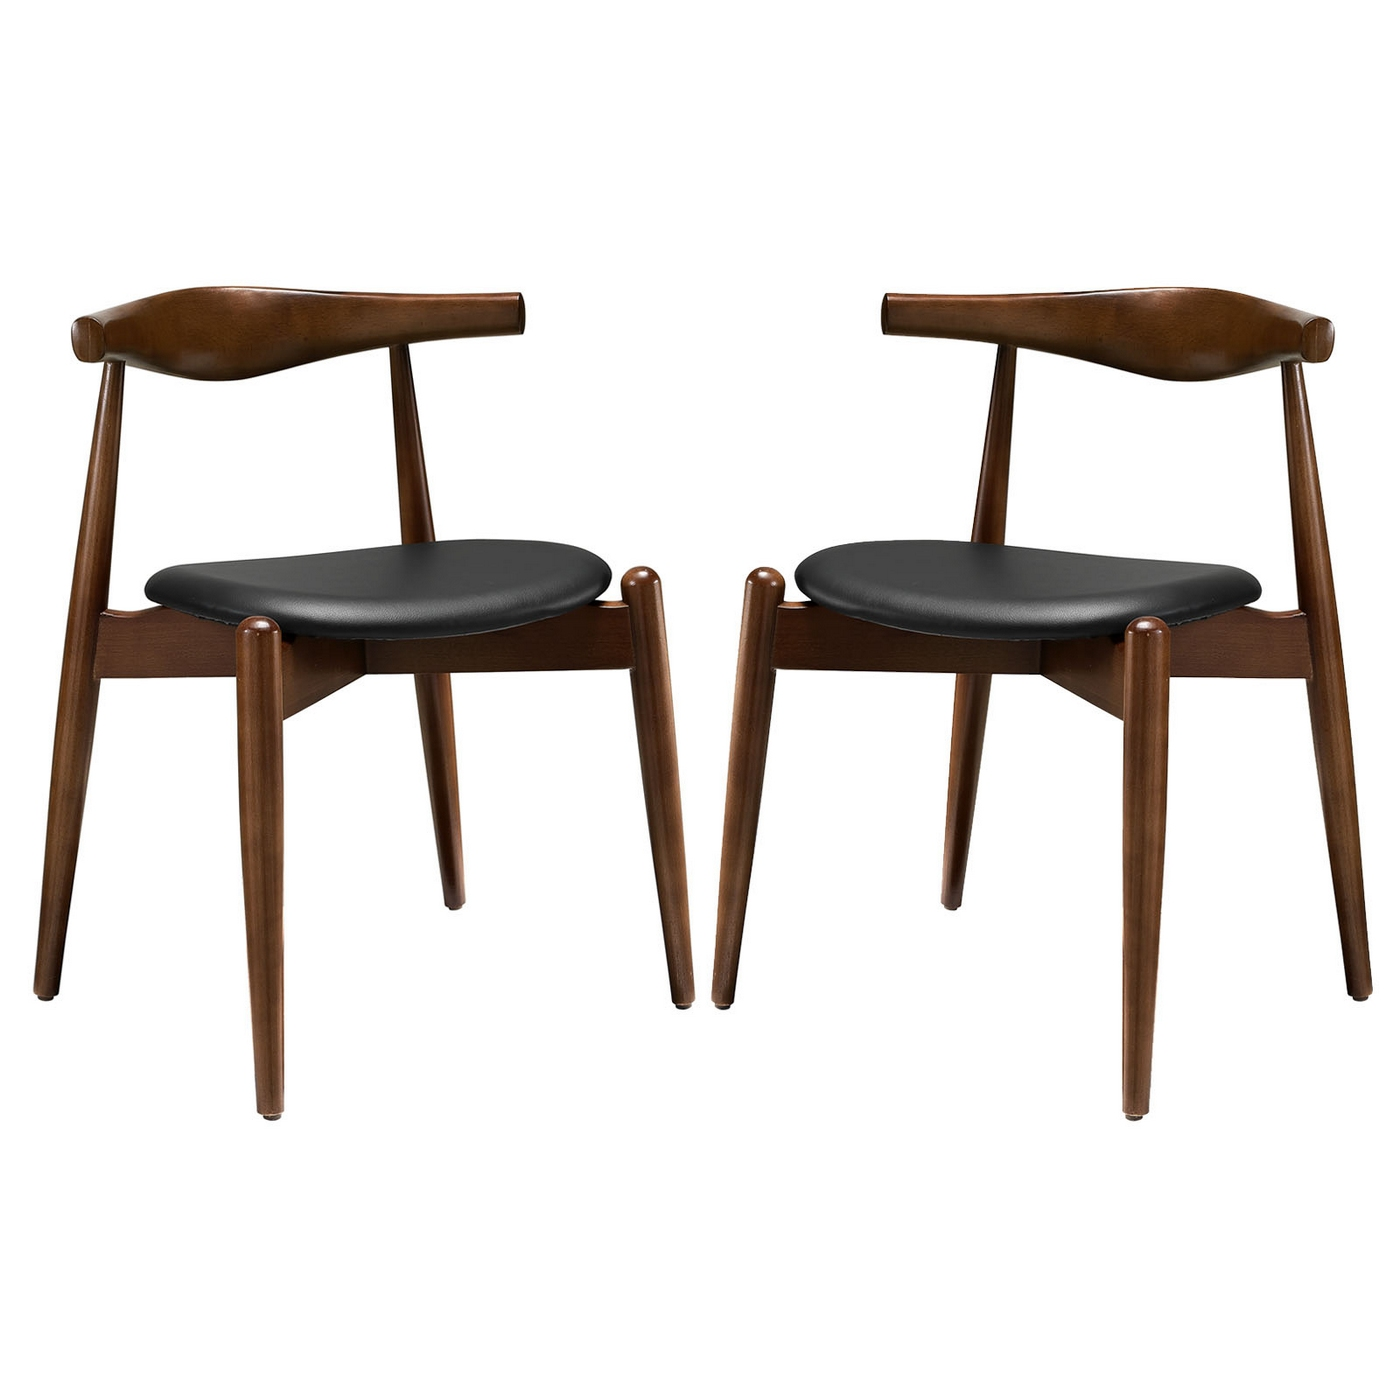 Set of 2 stalwart contemporary wood dining side chairs w for Upholstered dining chairs contemporary